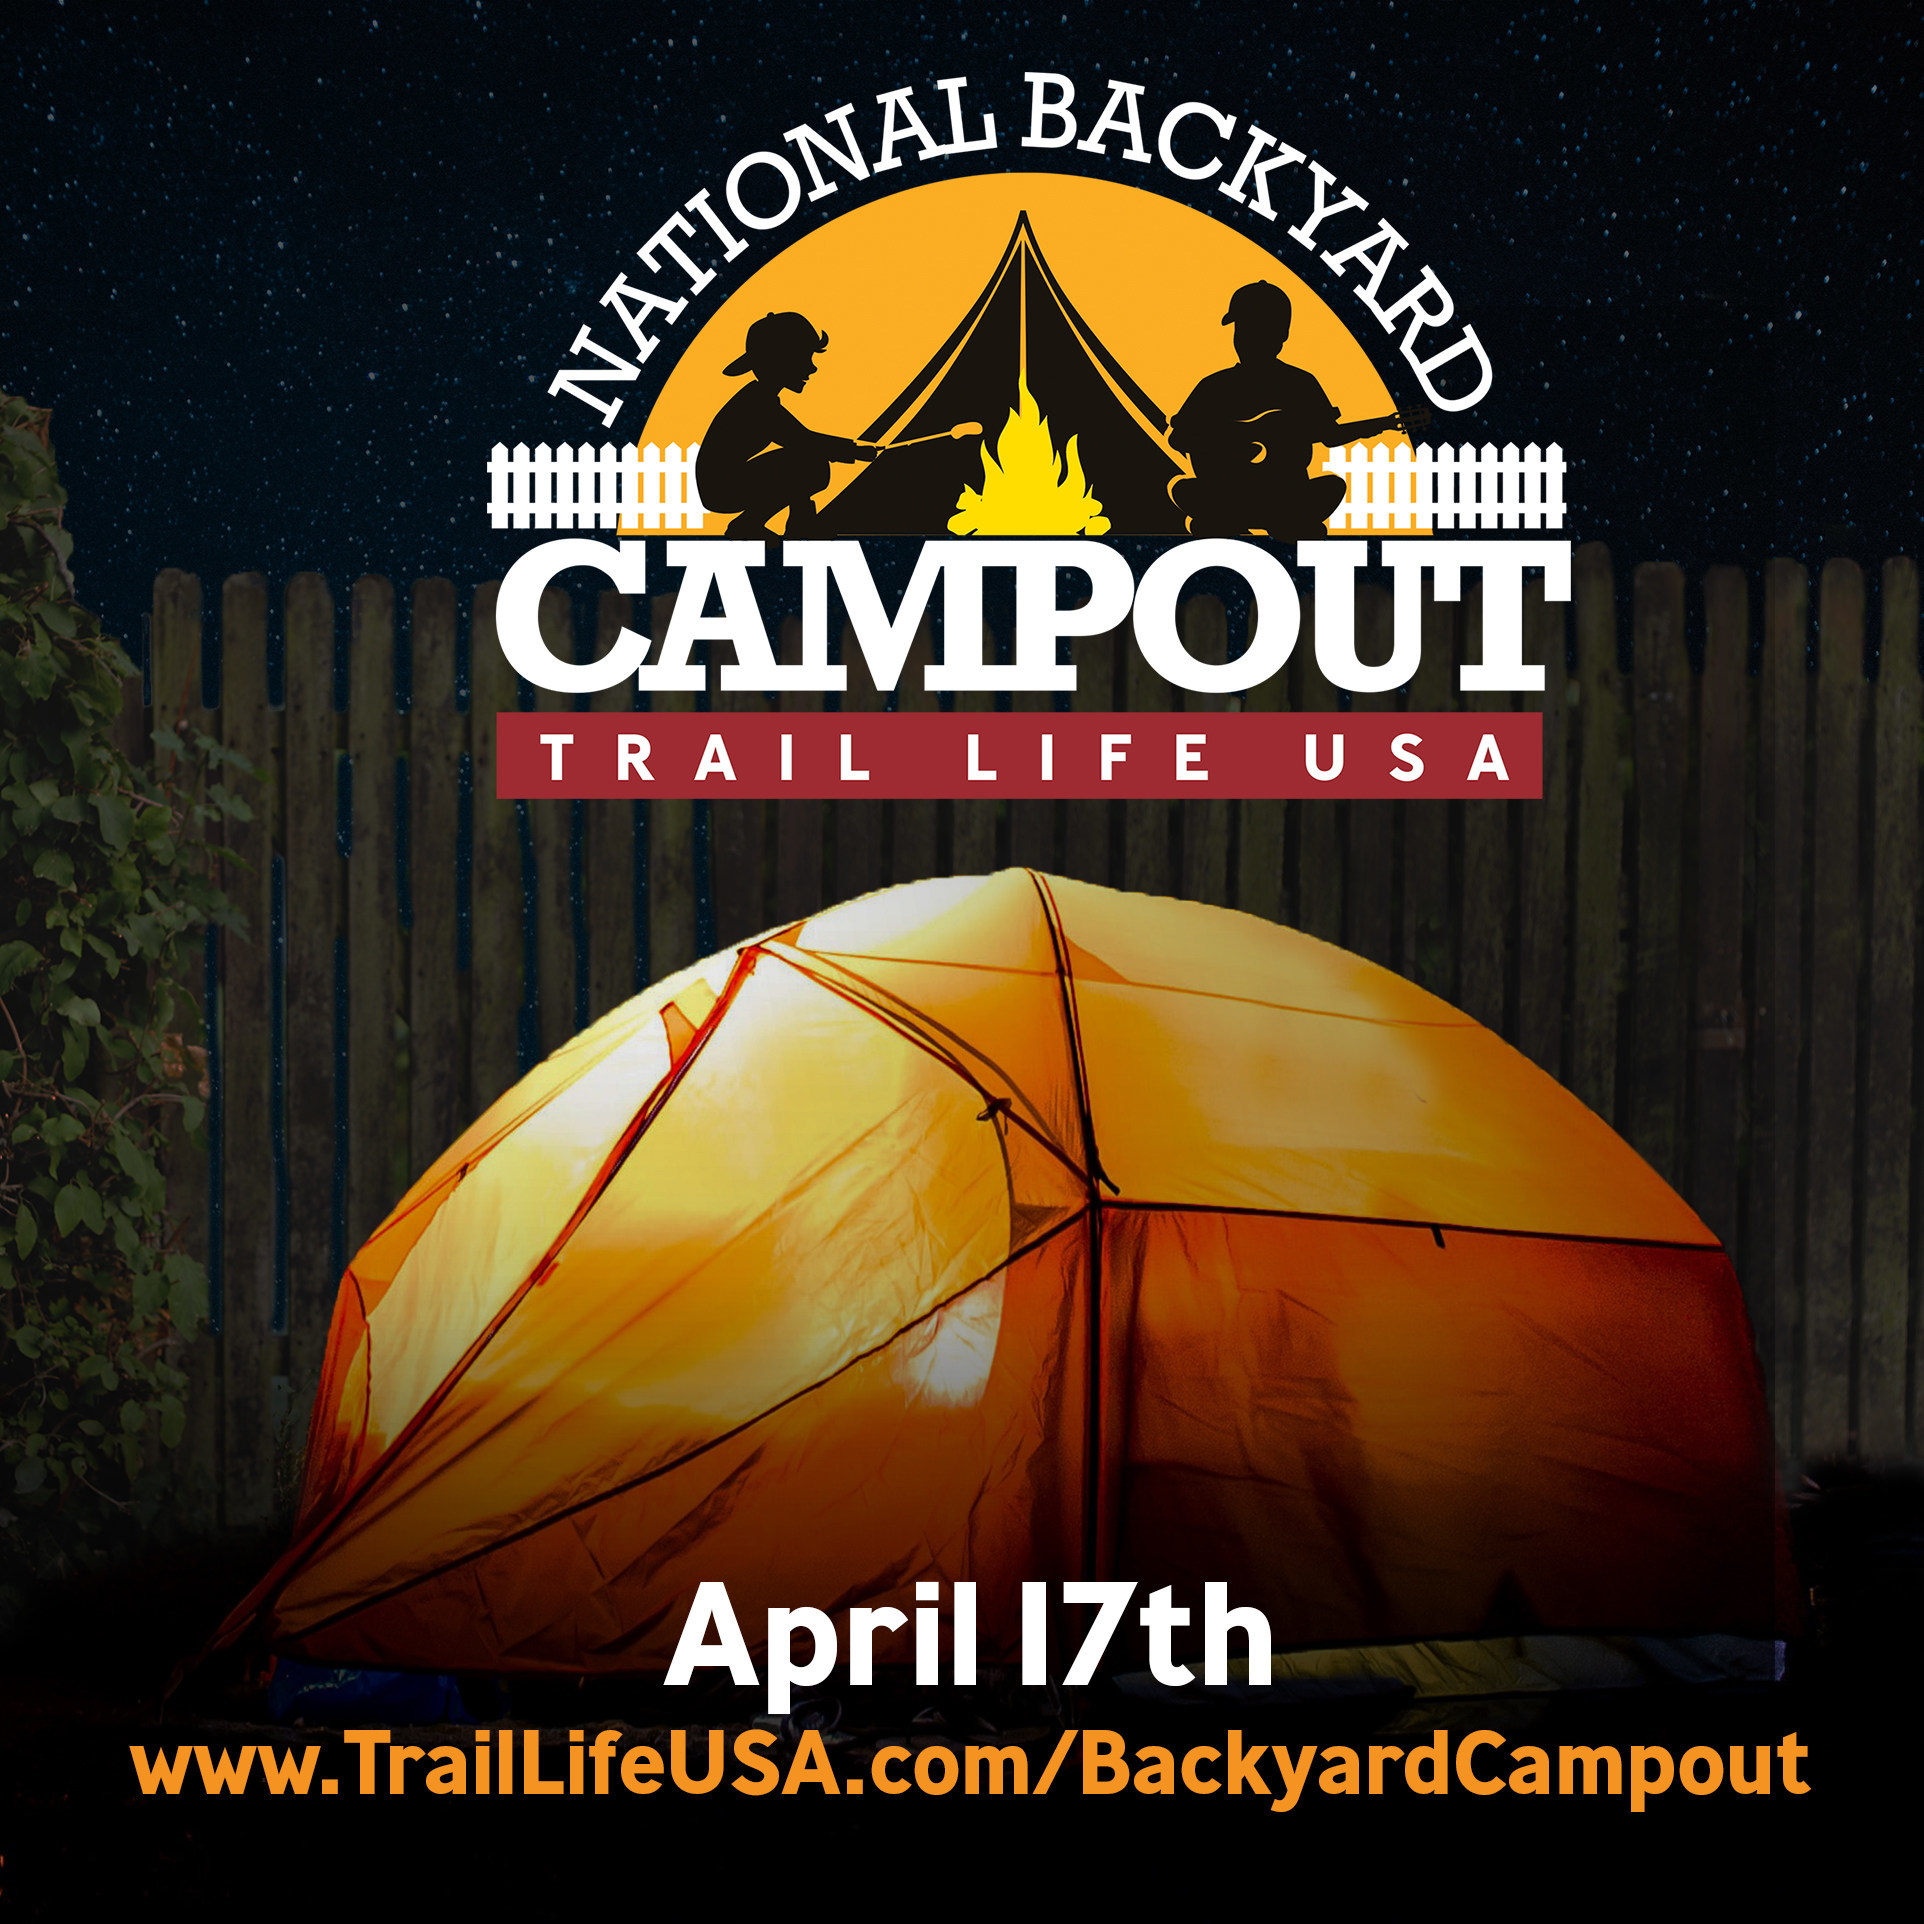 David Benham, Keith and Kristyn Getty to Help Launch Nationwide Backyard Movie Night with Trail Life USA